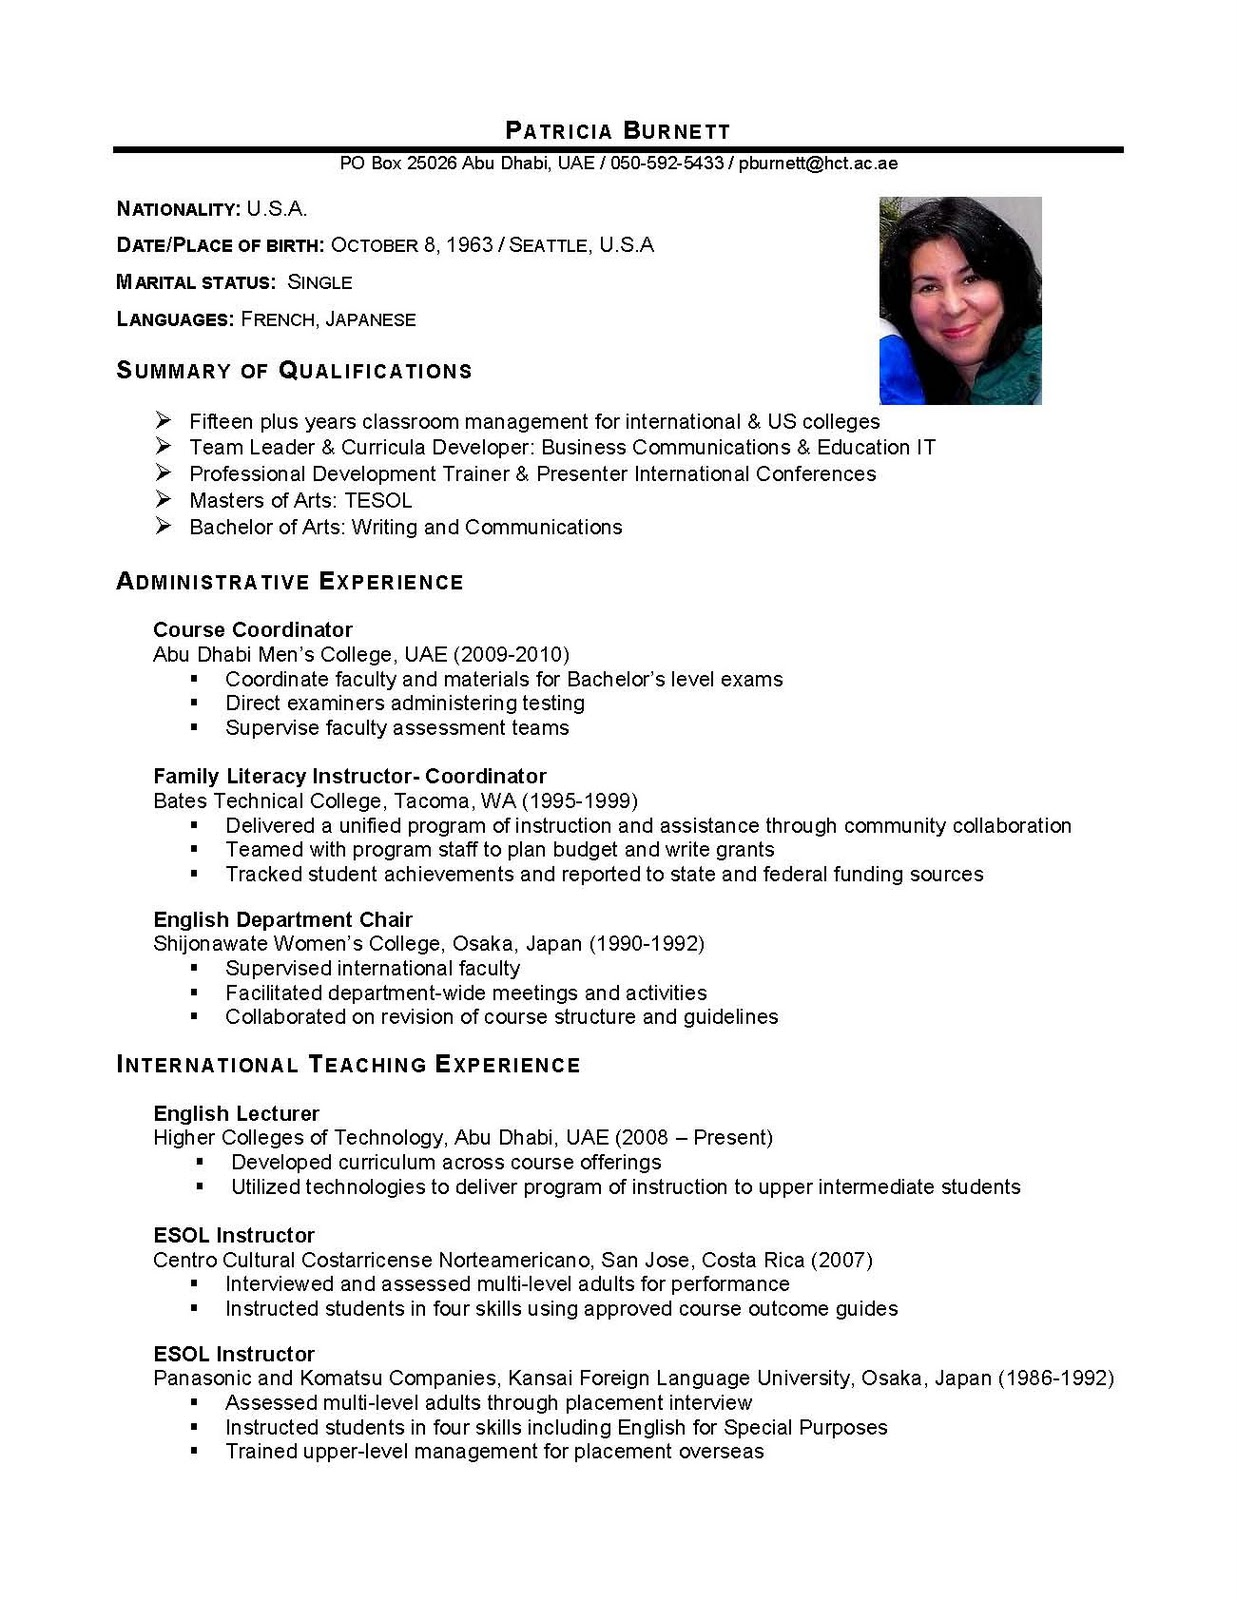 International Educator Curriculum Vitae